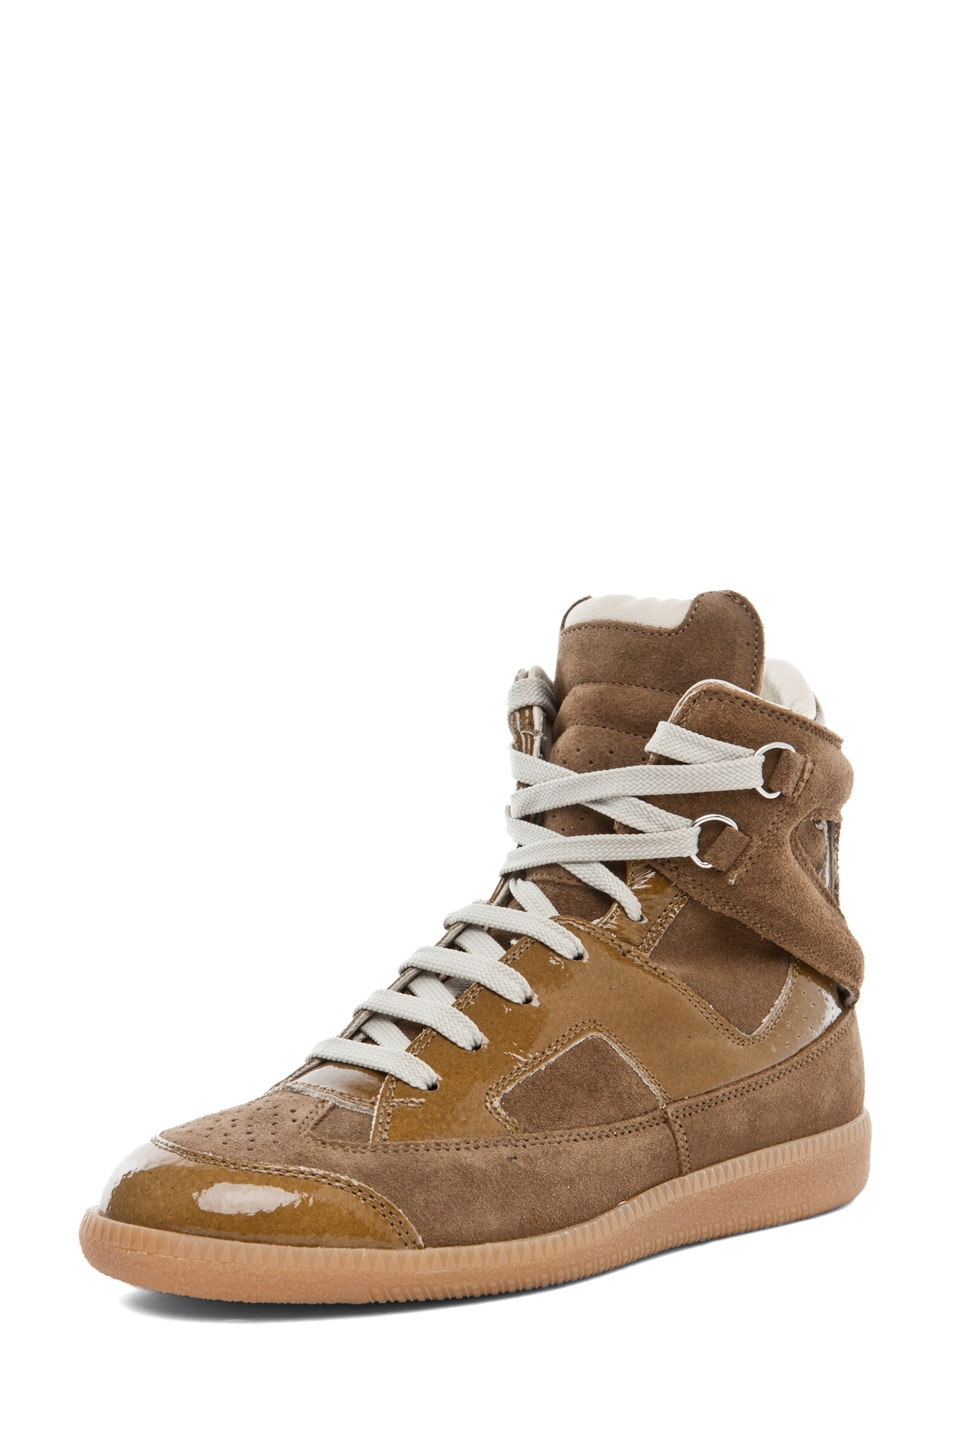 Image 2 of Maison Margiela Hi Top Sneaker in Olive